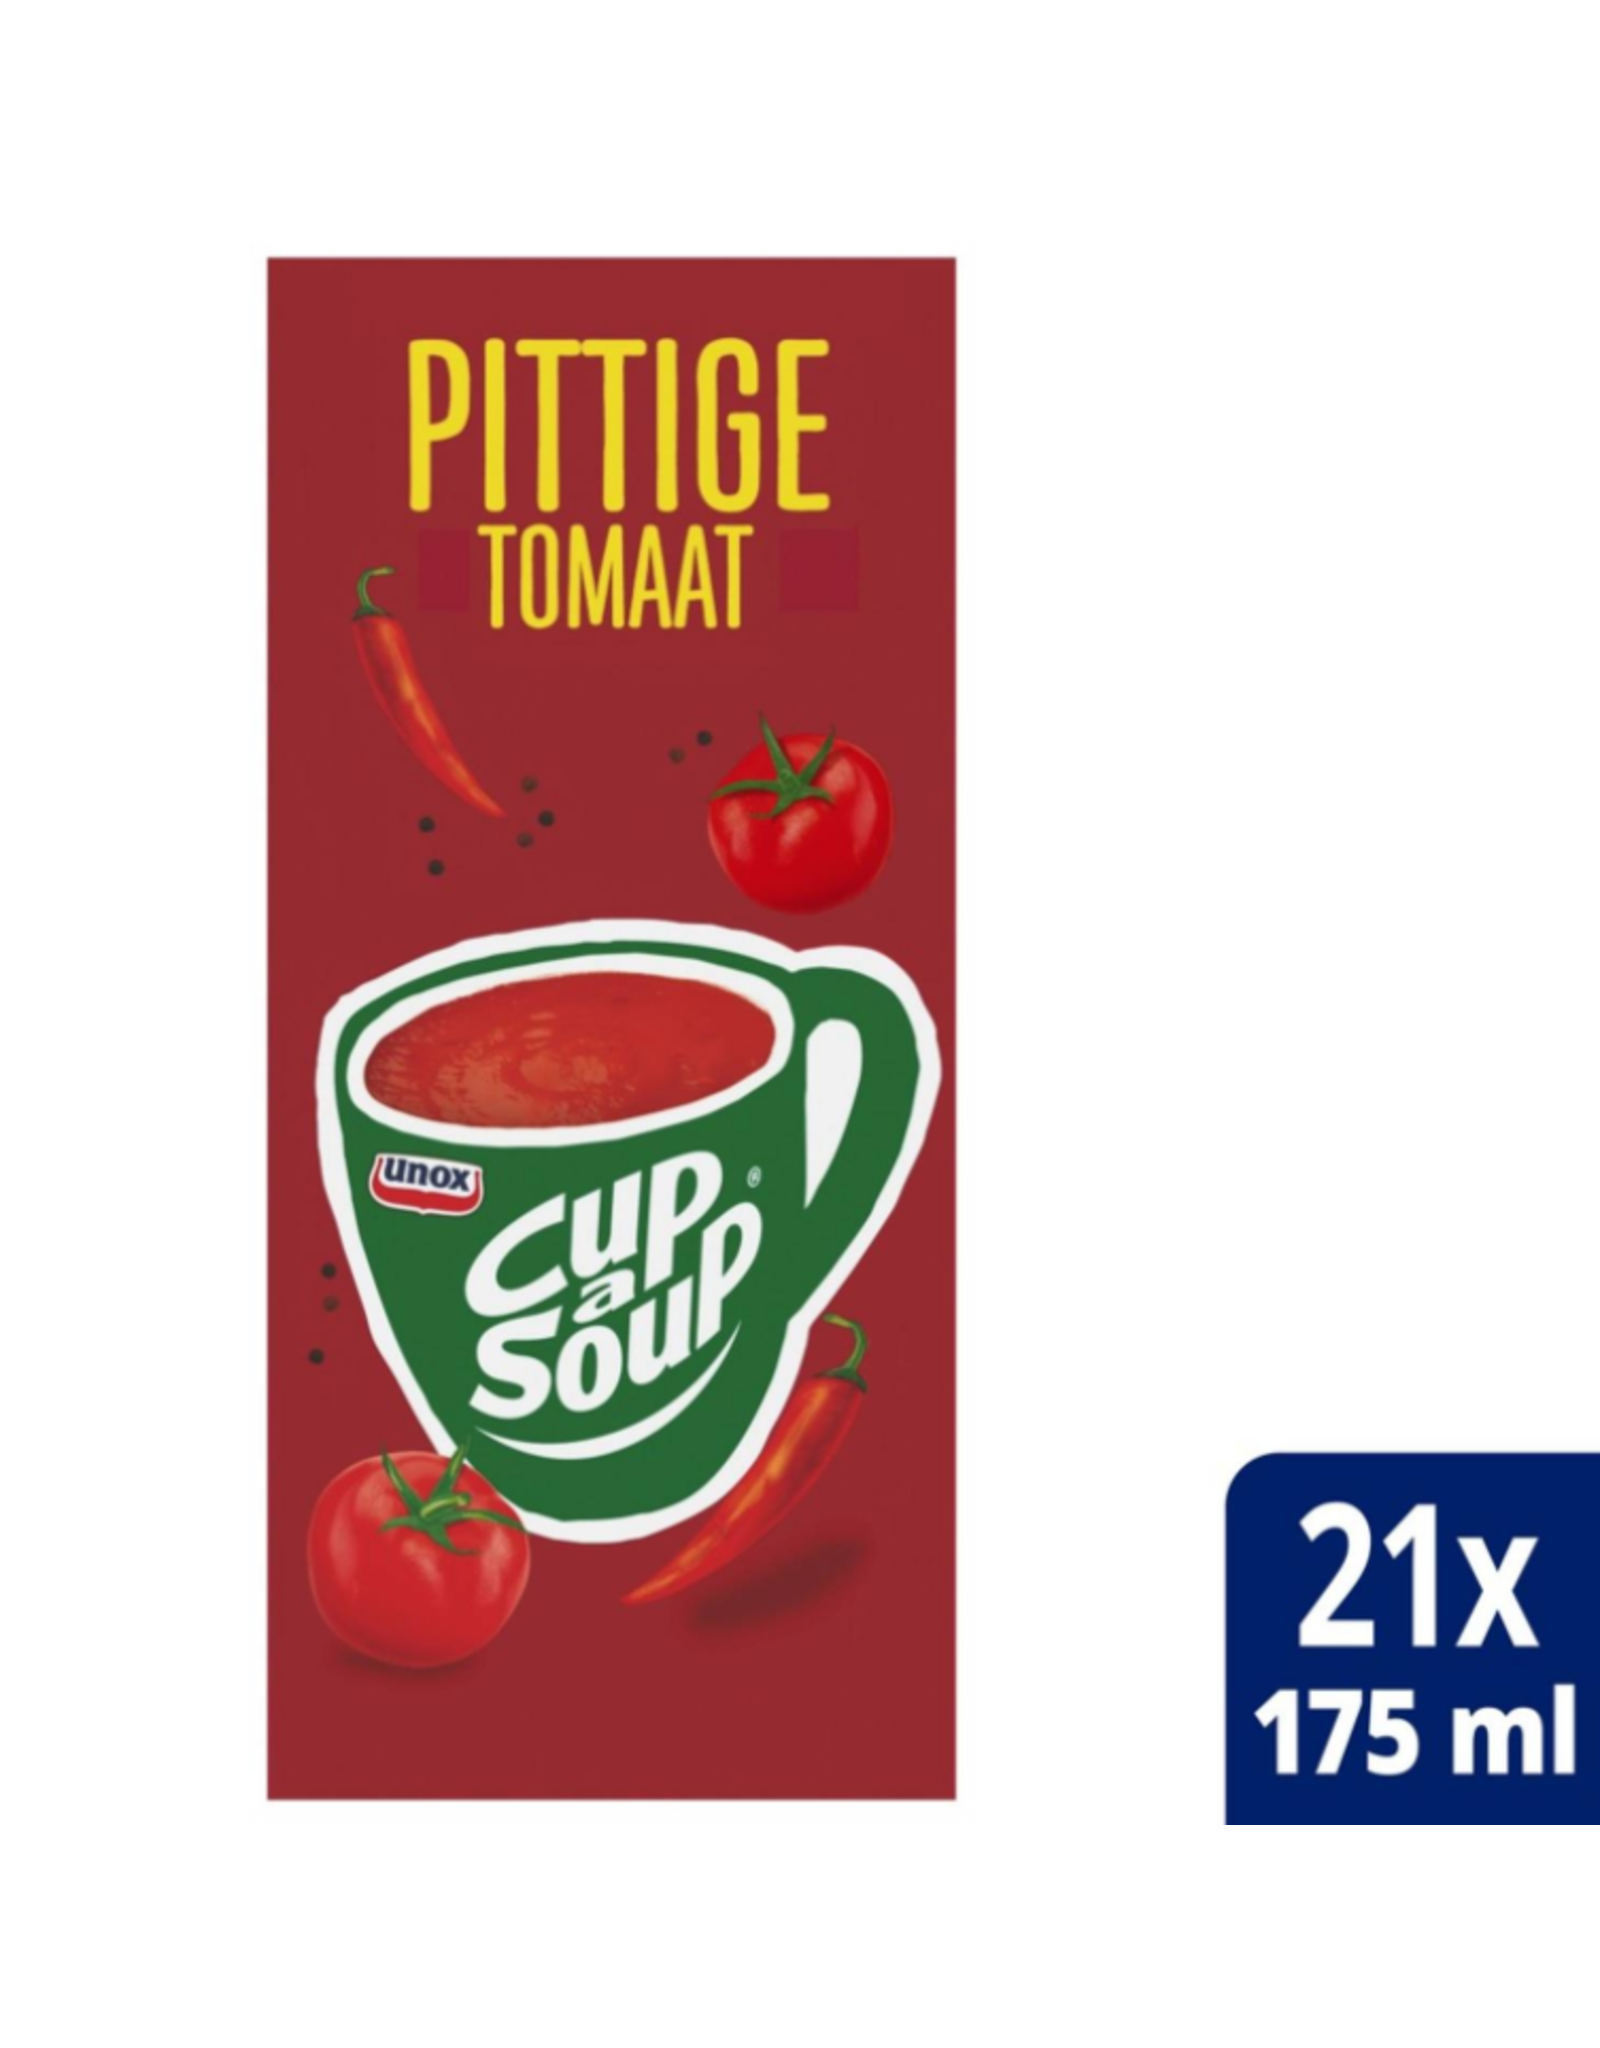 UNOX CUP A SOUP Spicy Tomato